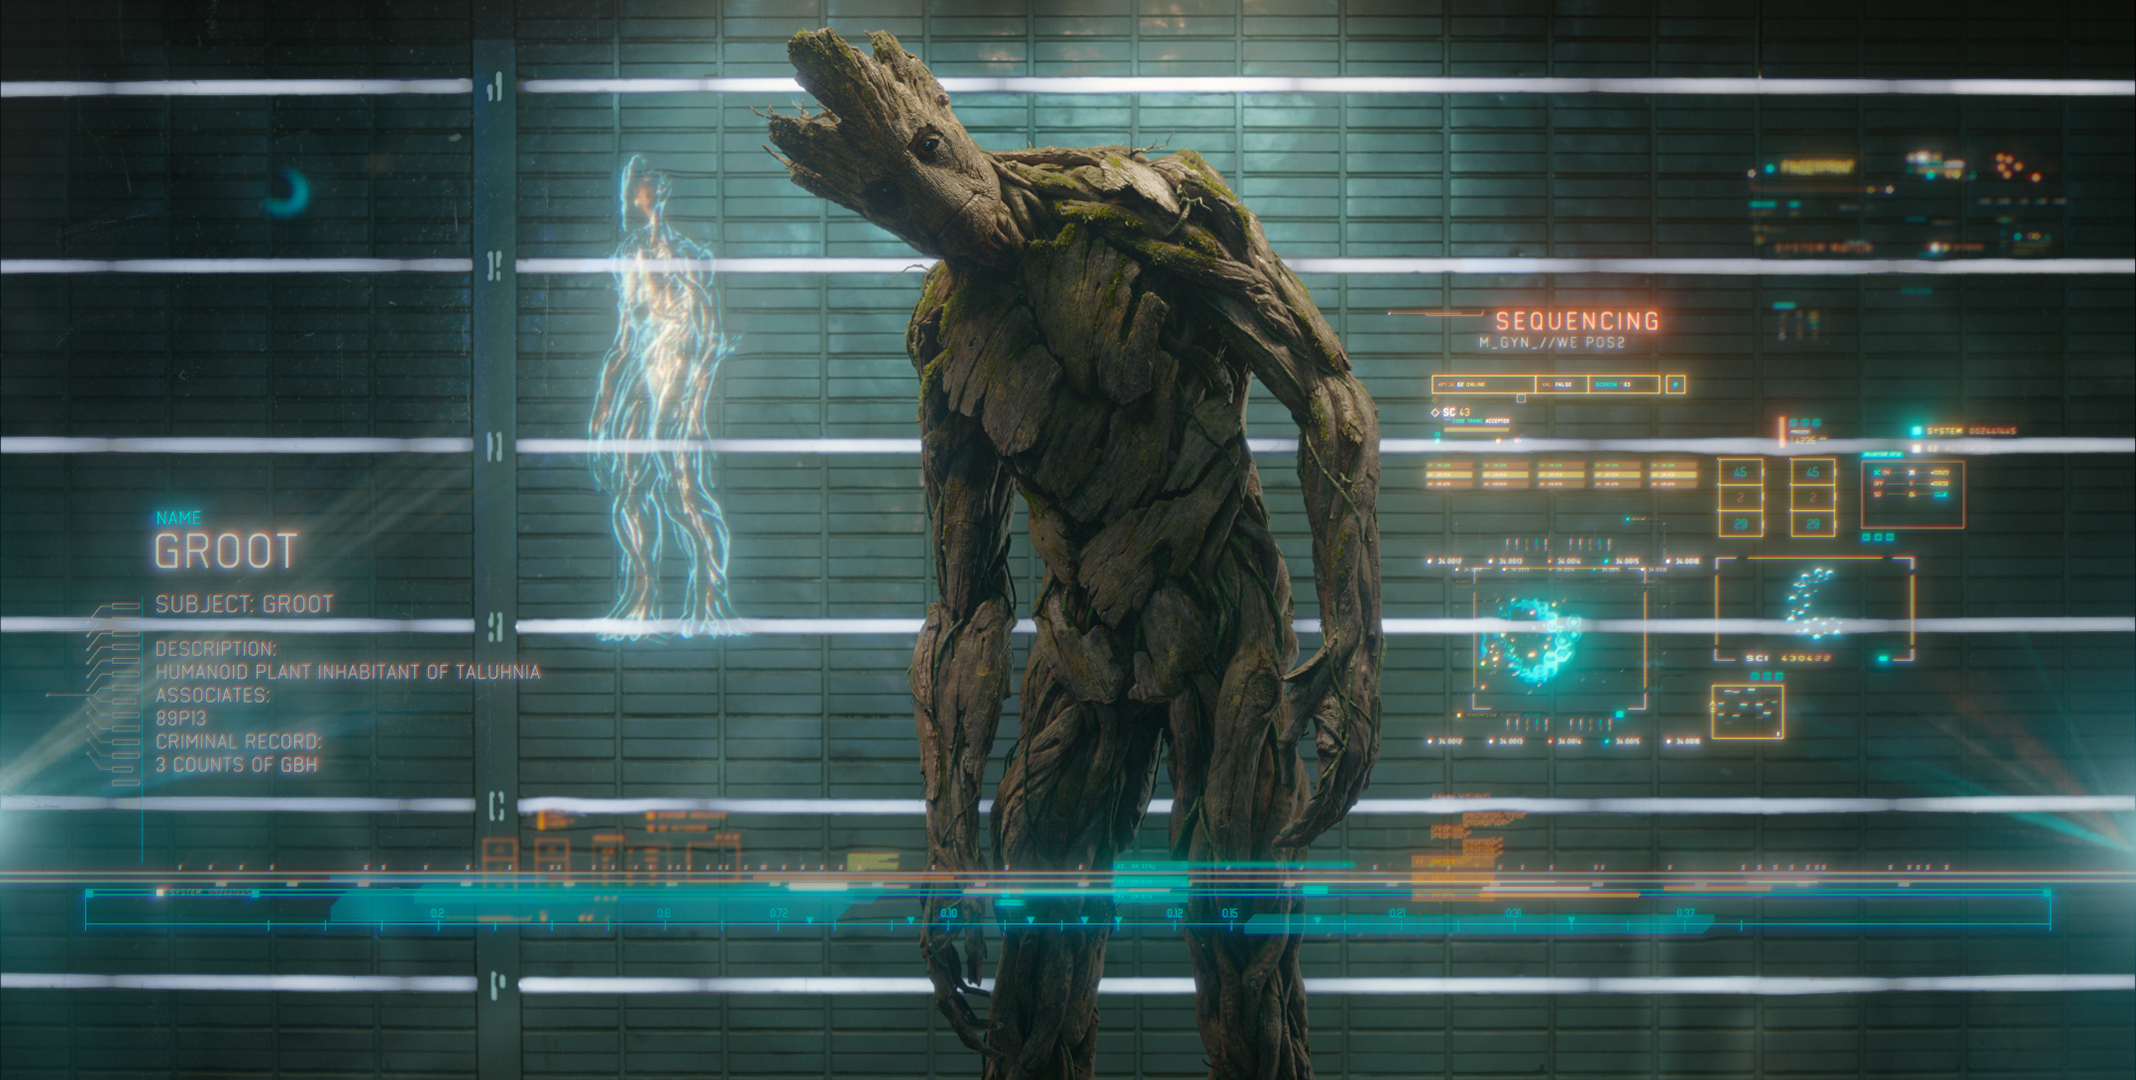 Groot Pictures